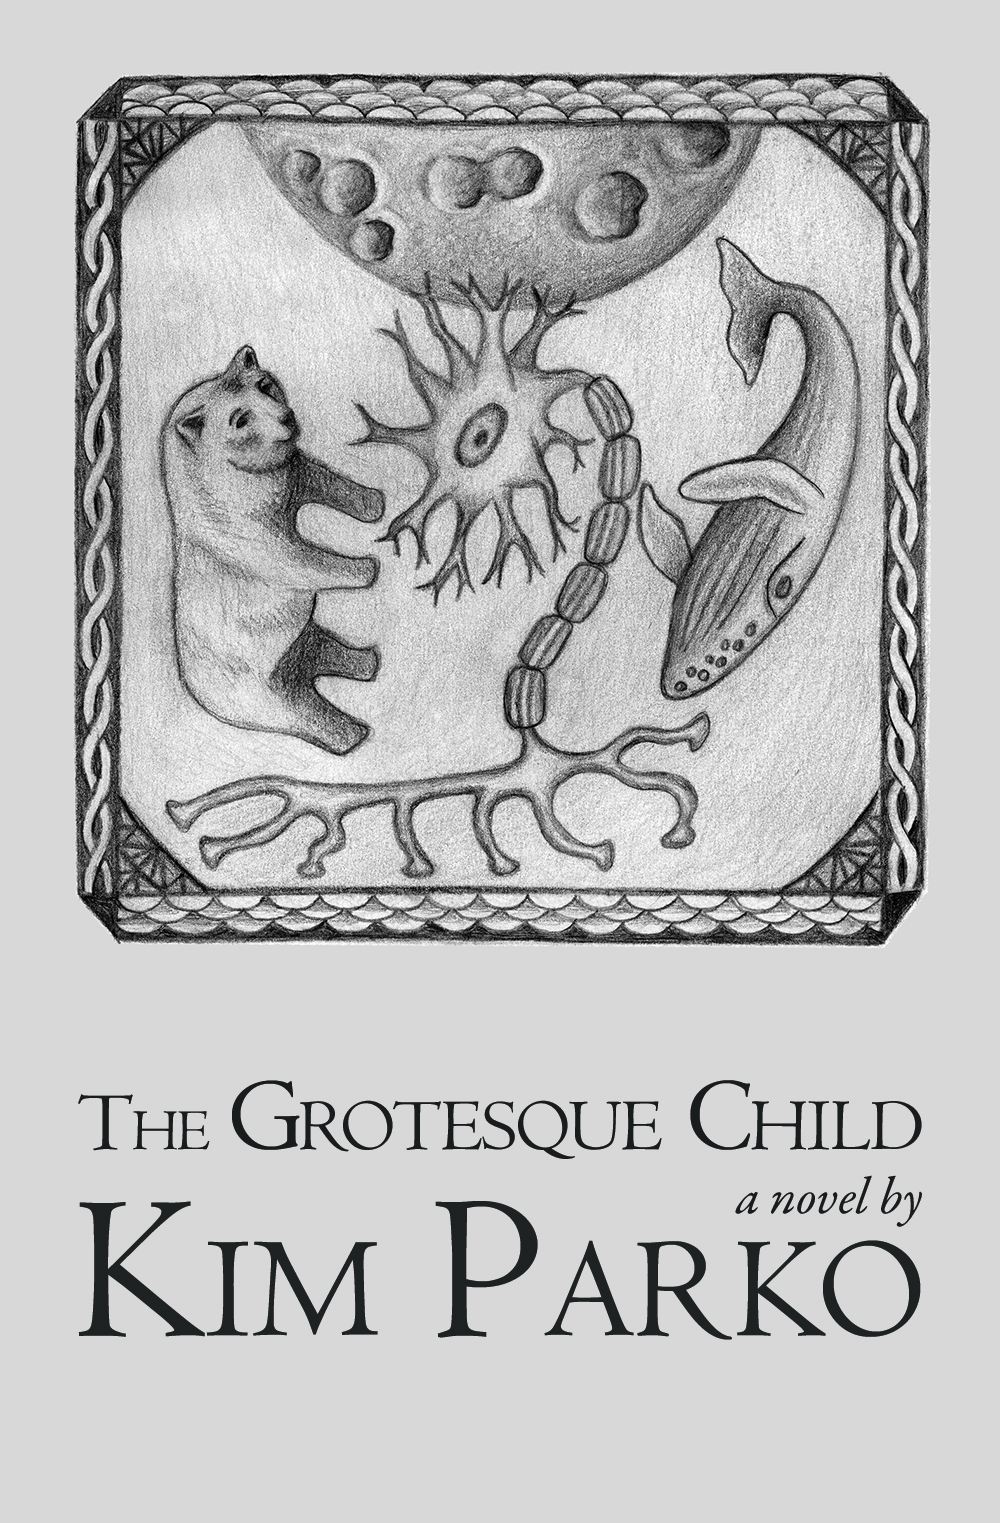 The Grotesque Child